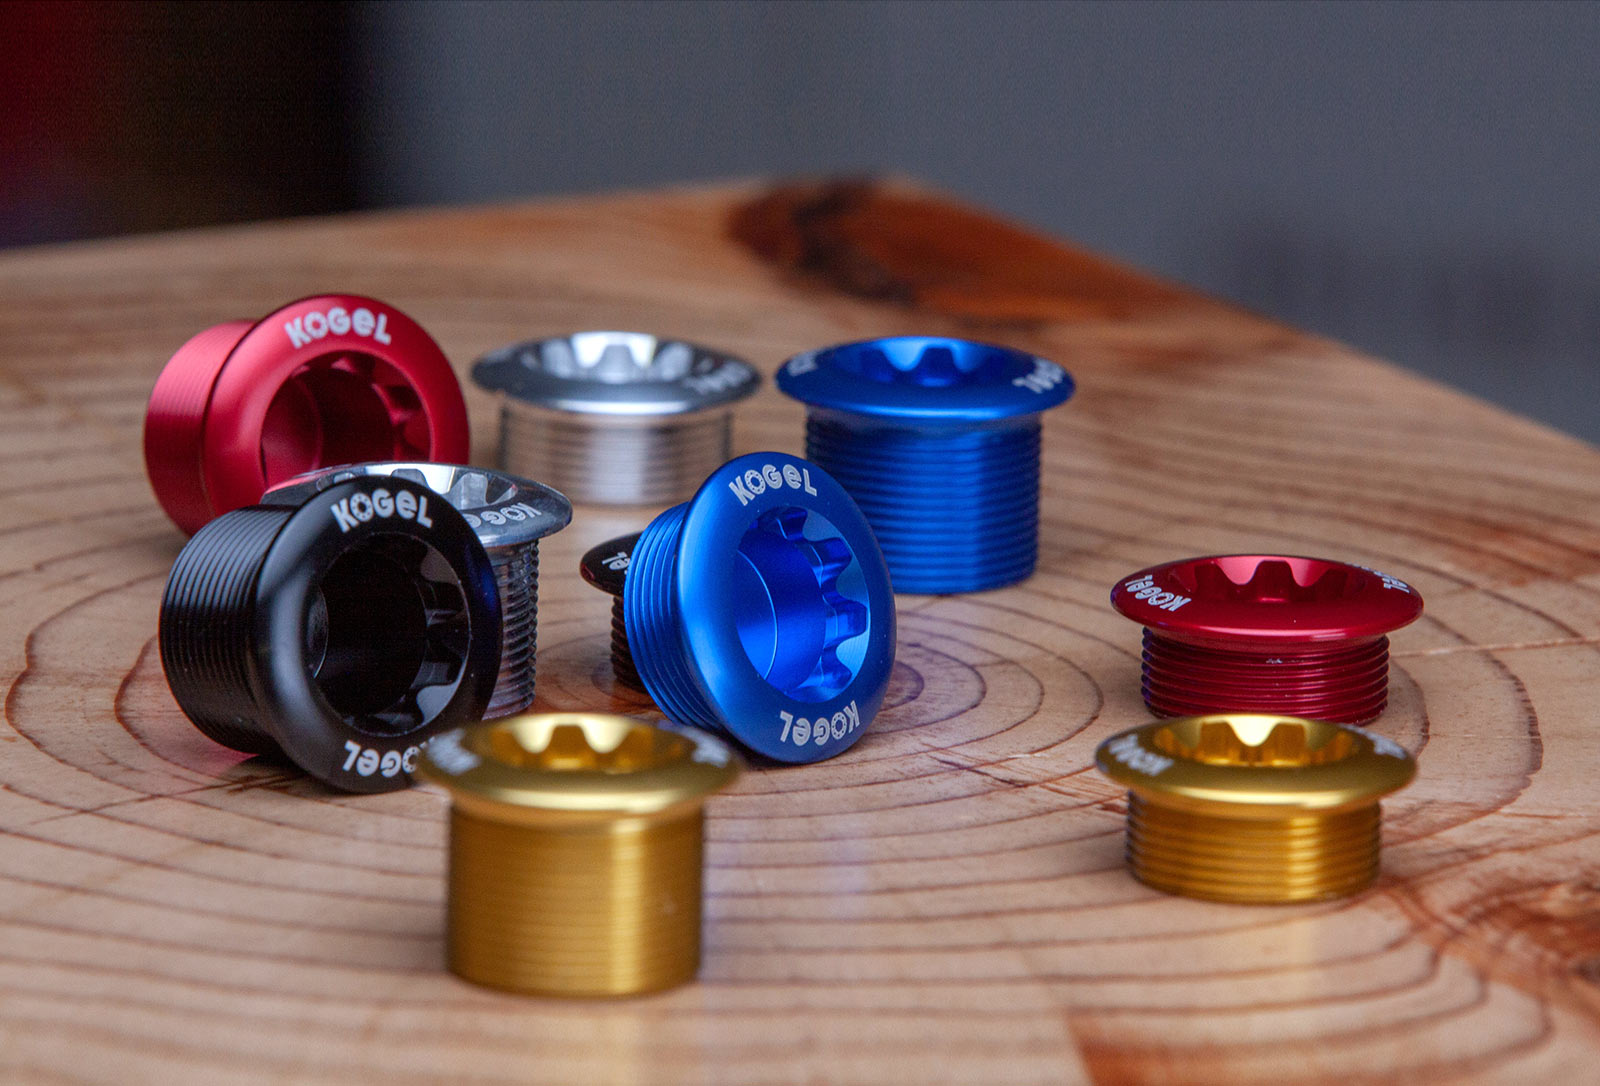 kogel shimano crank arm fixing bolt in anodized colors